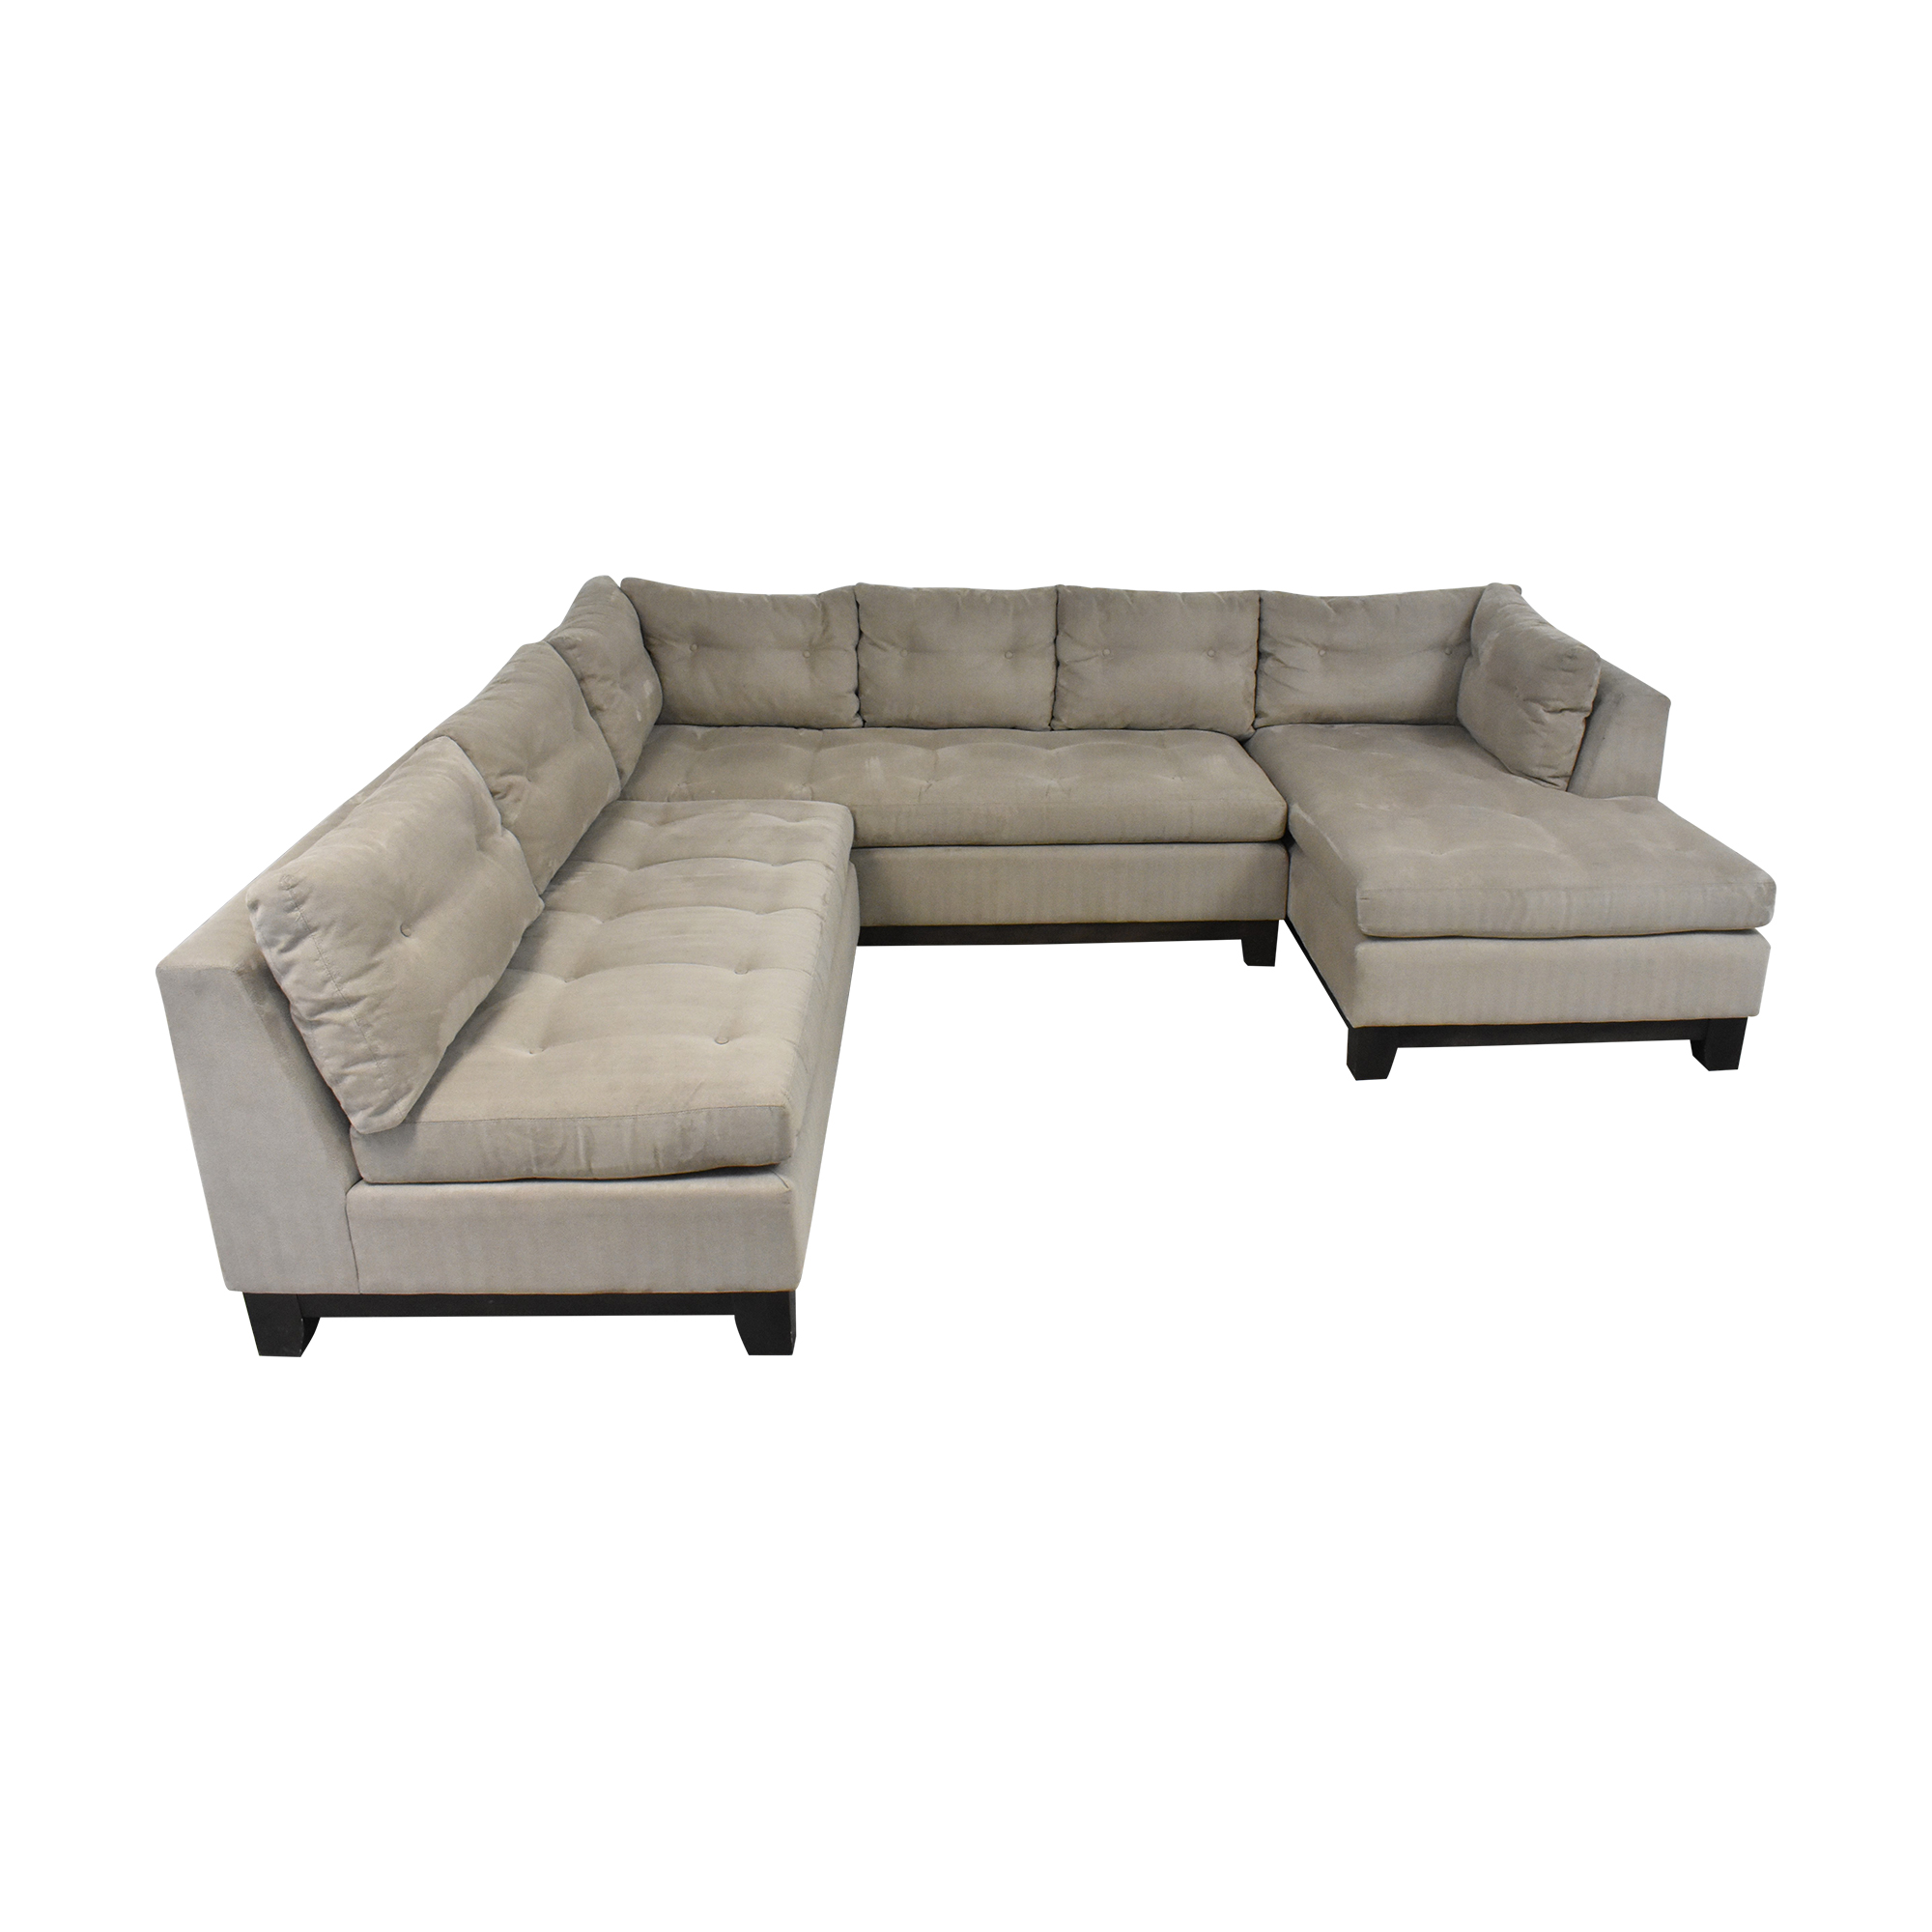 shop Arhaus Camden Collection Chaise Sectional Sofa Arhaus Sectionals